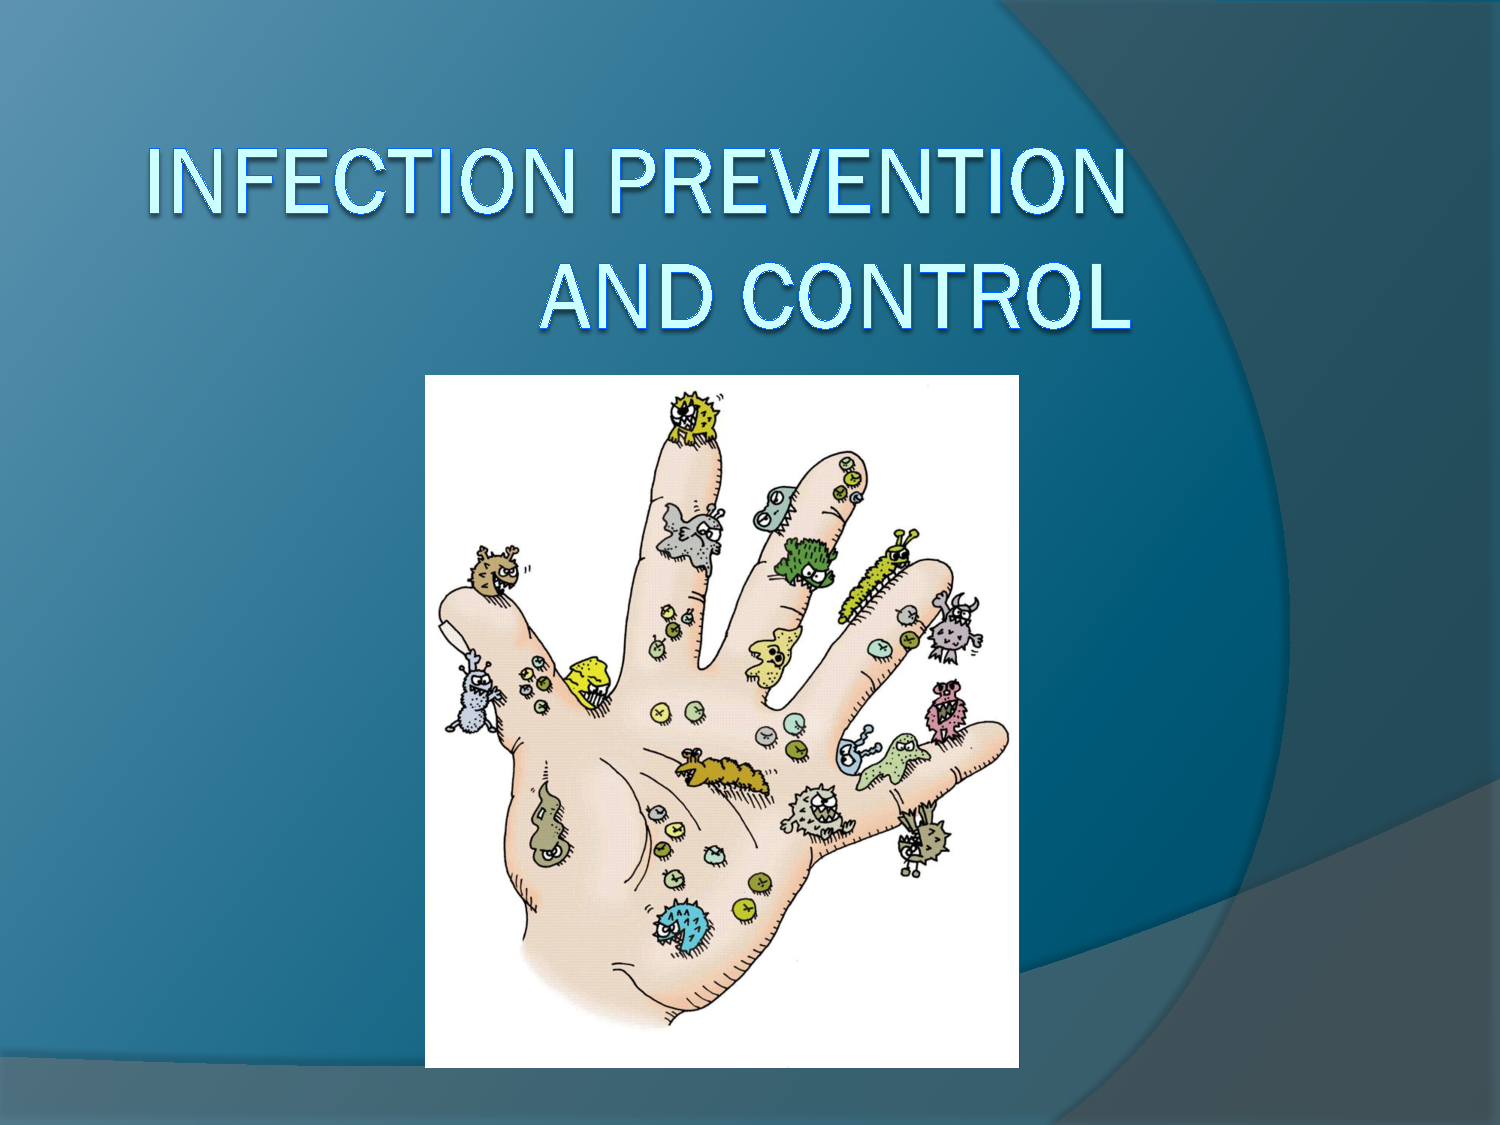 prevention and control of infections essay Check out our top free essays on infection prevention and control to help you write your own essay.